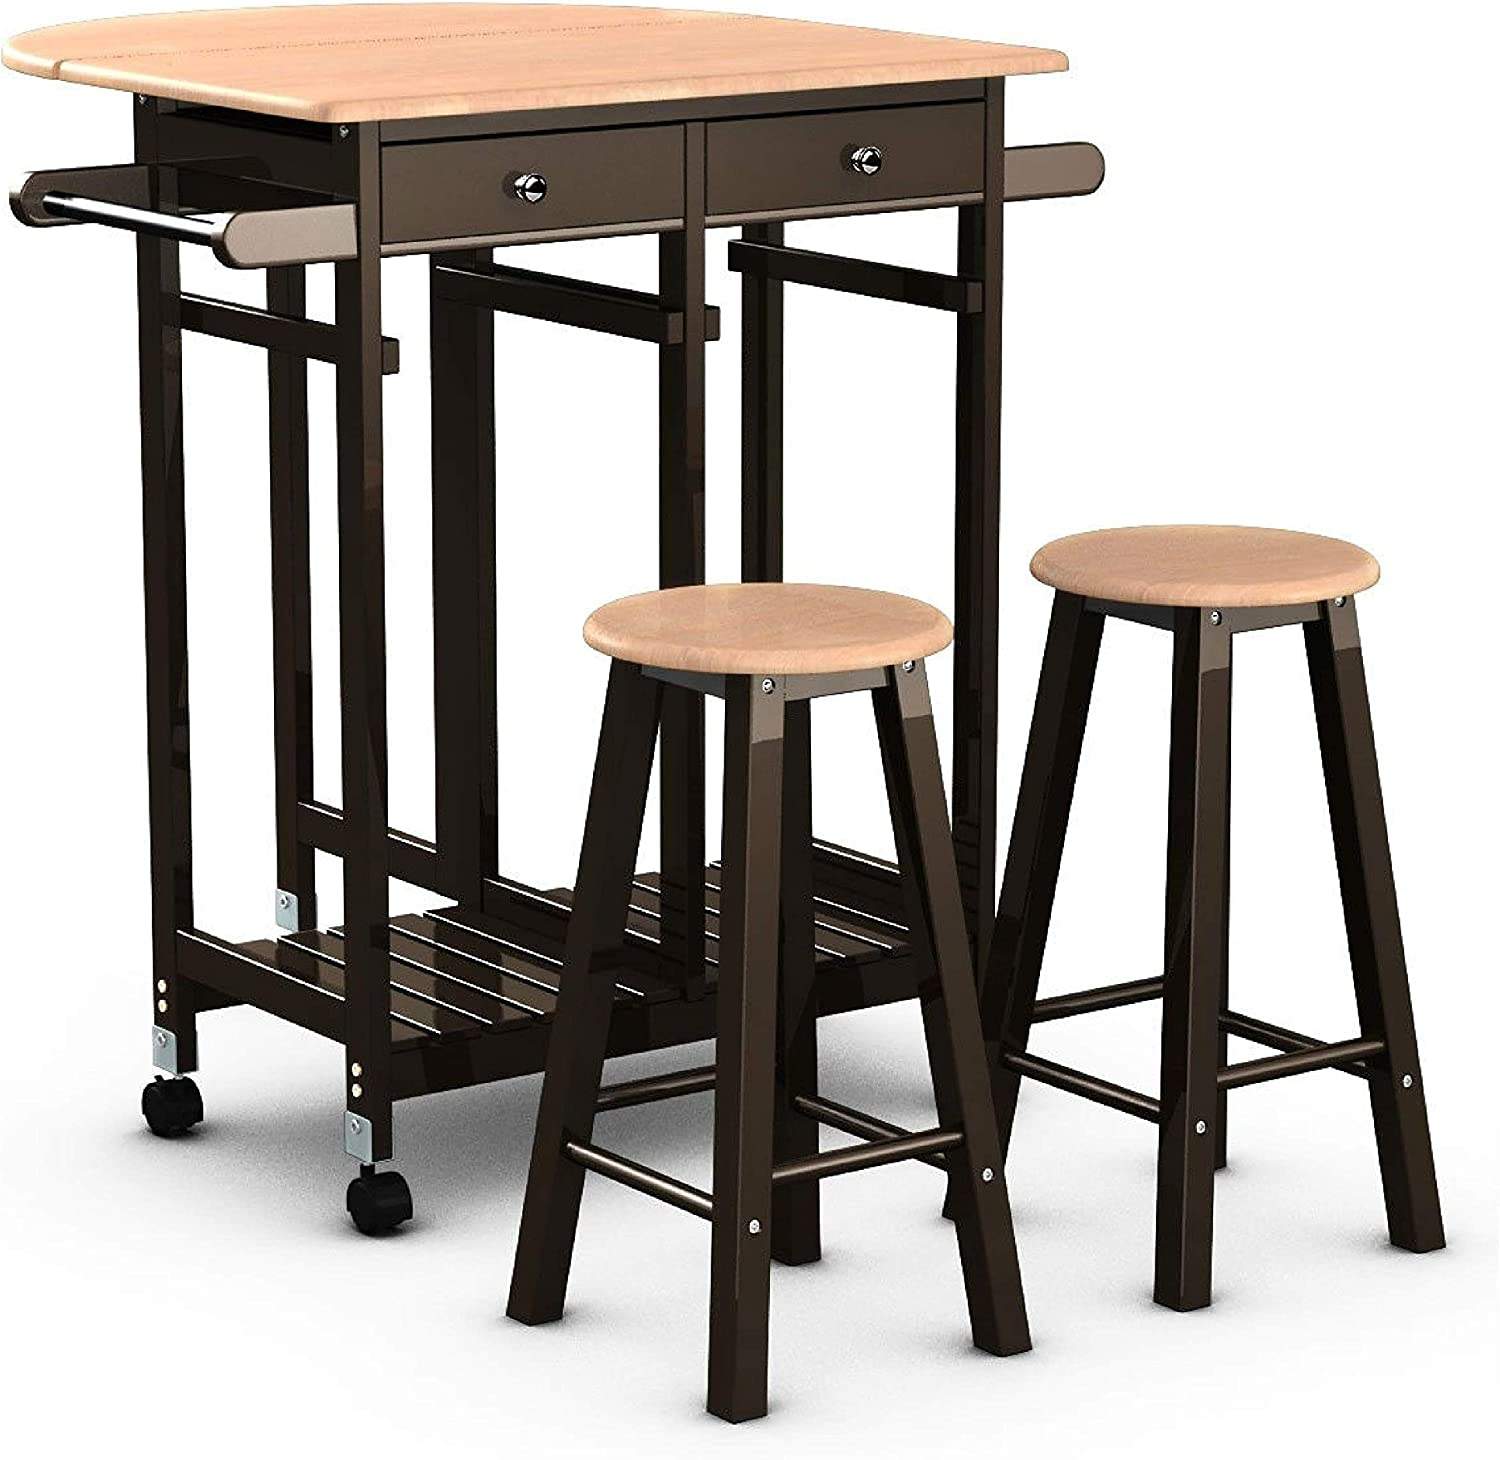 Amazon Com Kitchen Cart Mobile Kitchen Island Cart Breakfast Table With 2 Stools Kitchen Dining